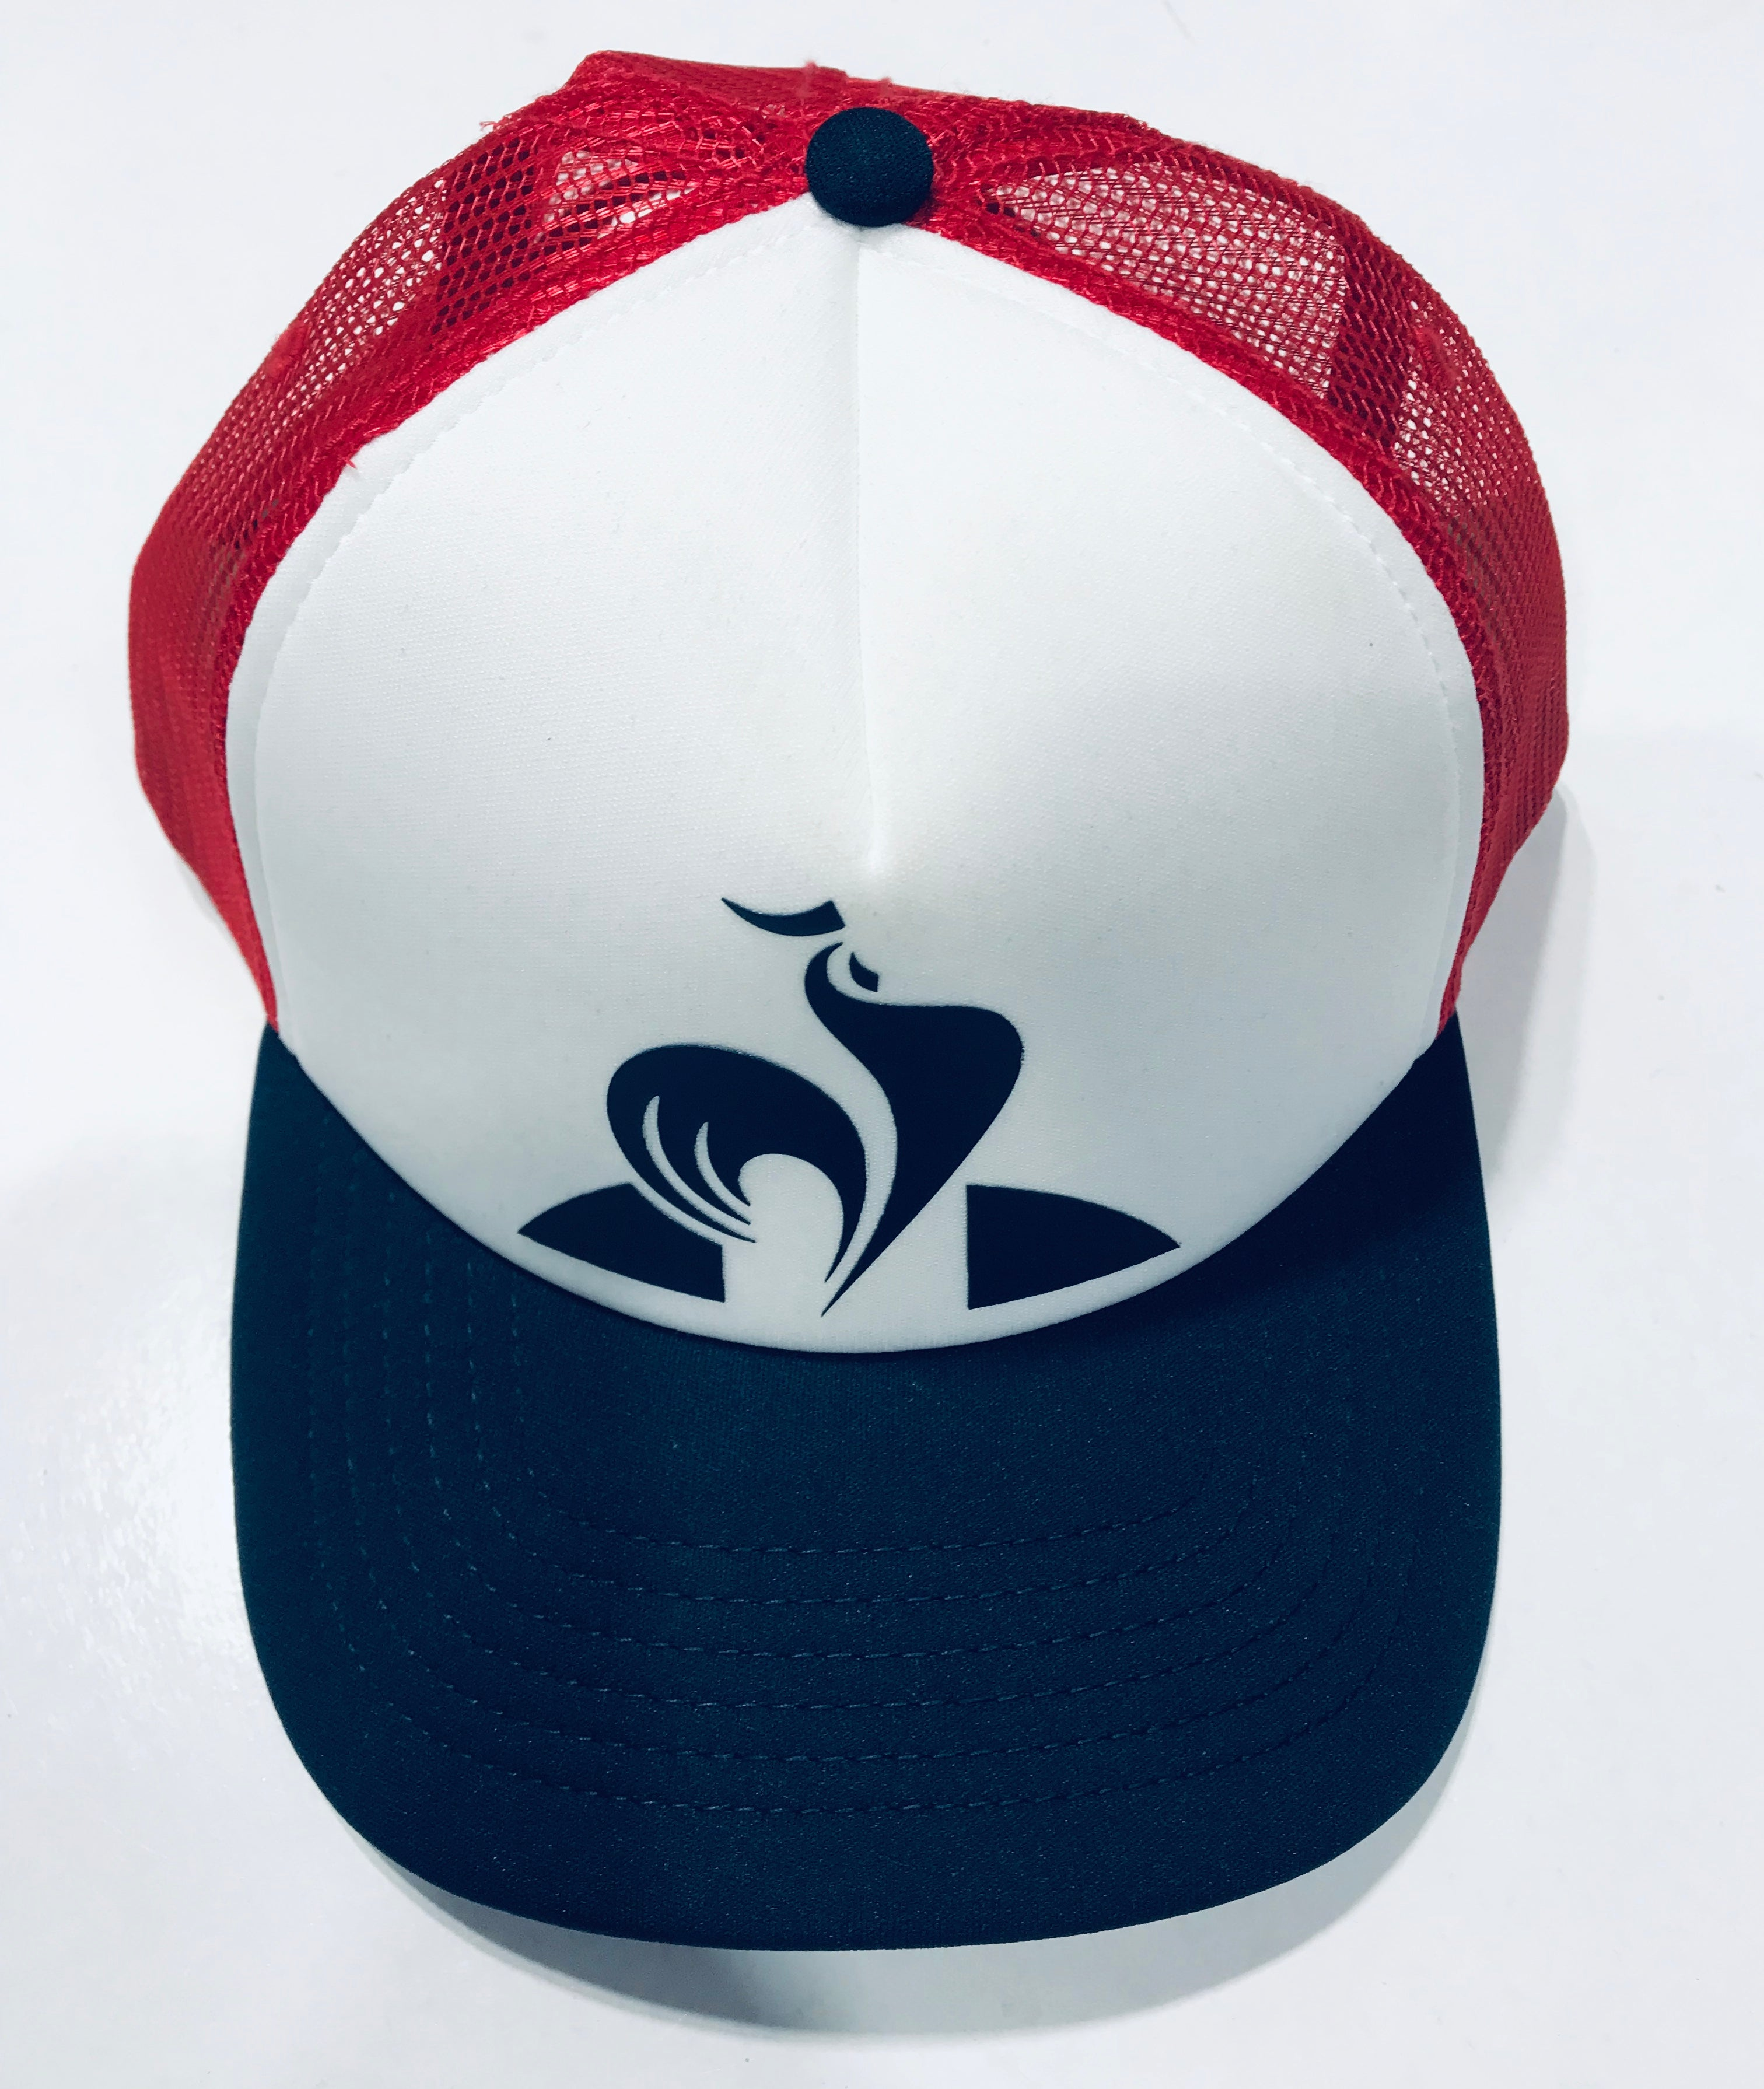 caa7eed1439e le coq sportif Classic Trucker Cap 2820691 Dress Blue   Red Famous Rock  Shop Newcastle 2300